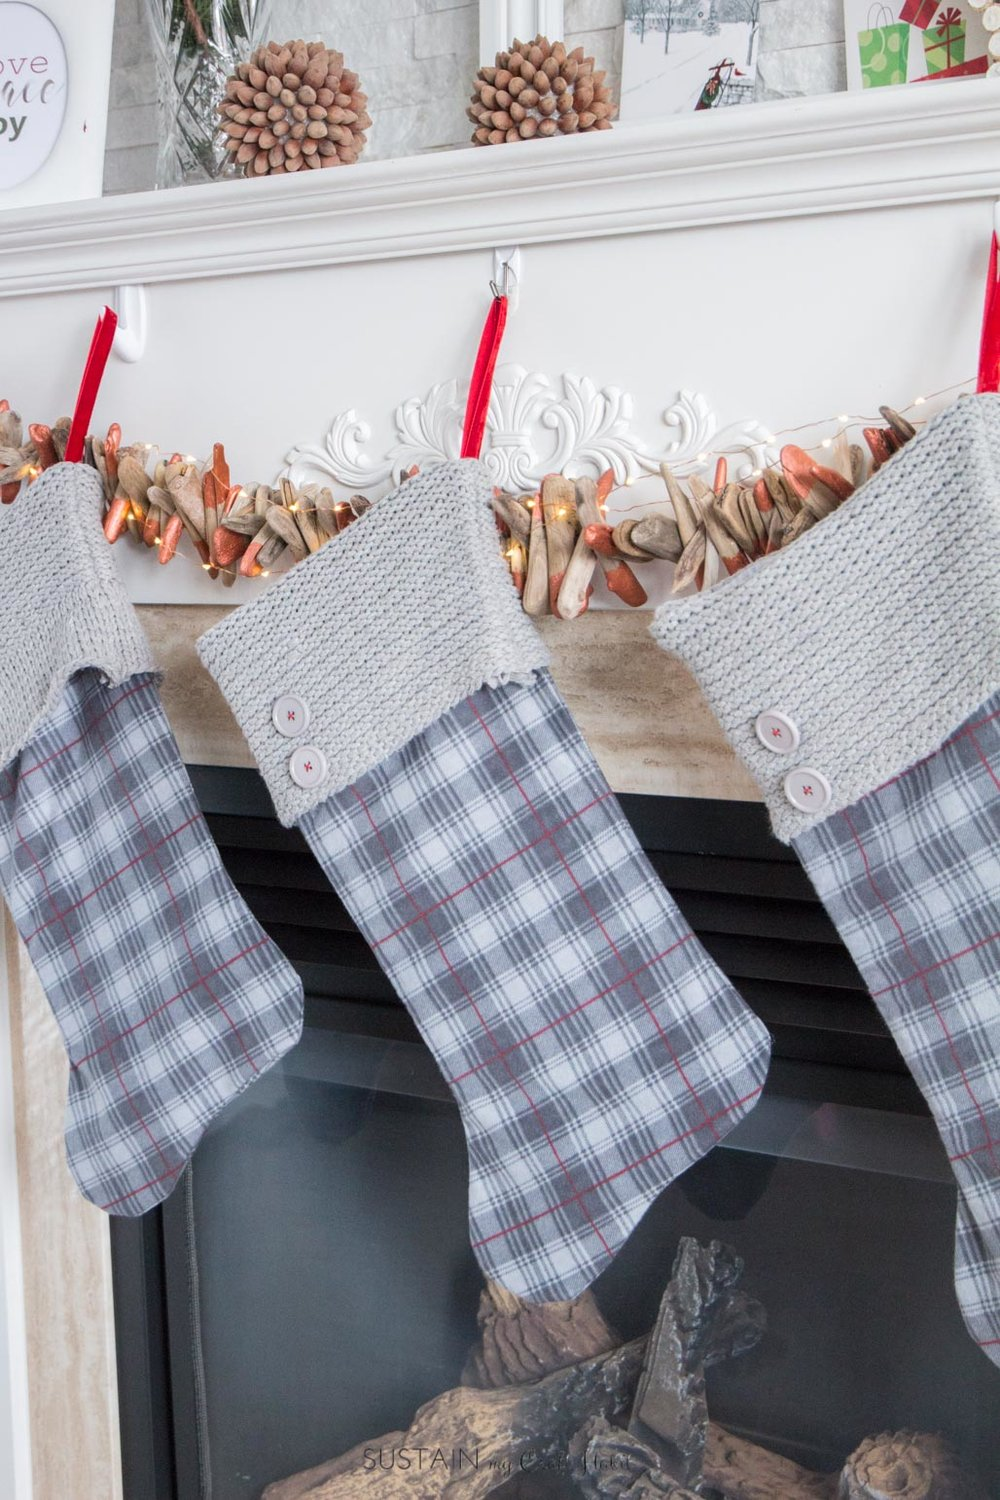 DIY Upcycled flannel and knit sweater into a rustic Christmas stocking   Holiday mantel DIY decor idea